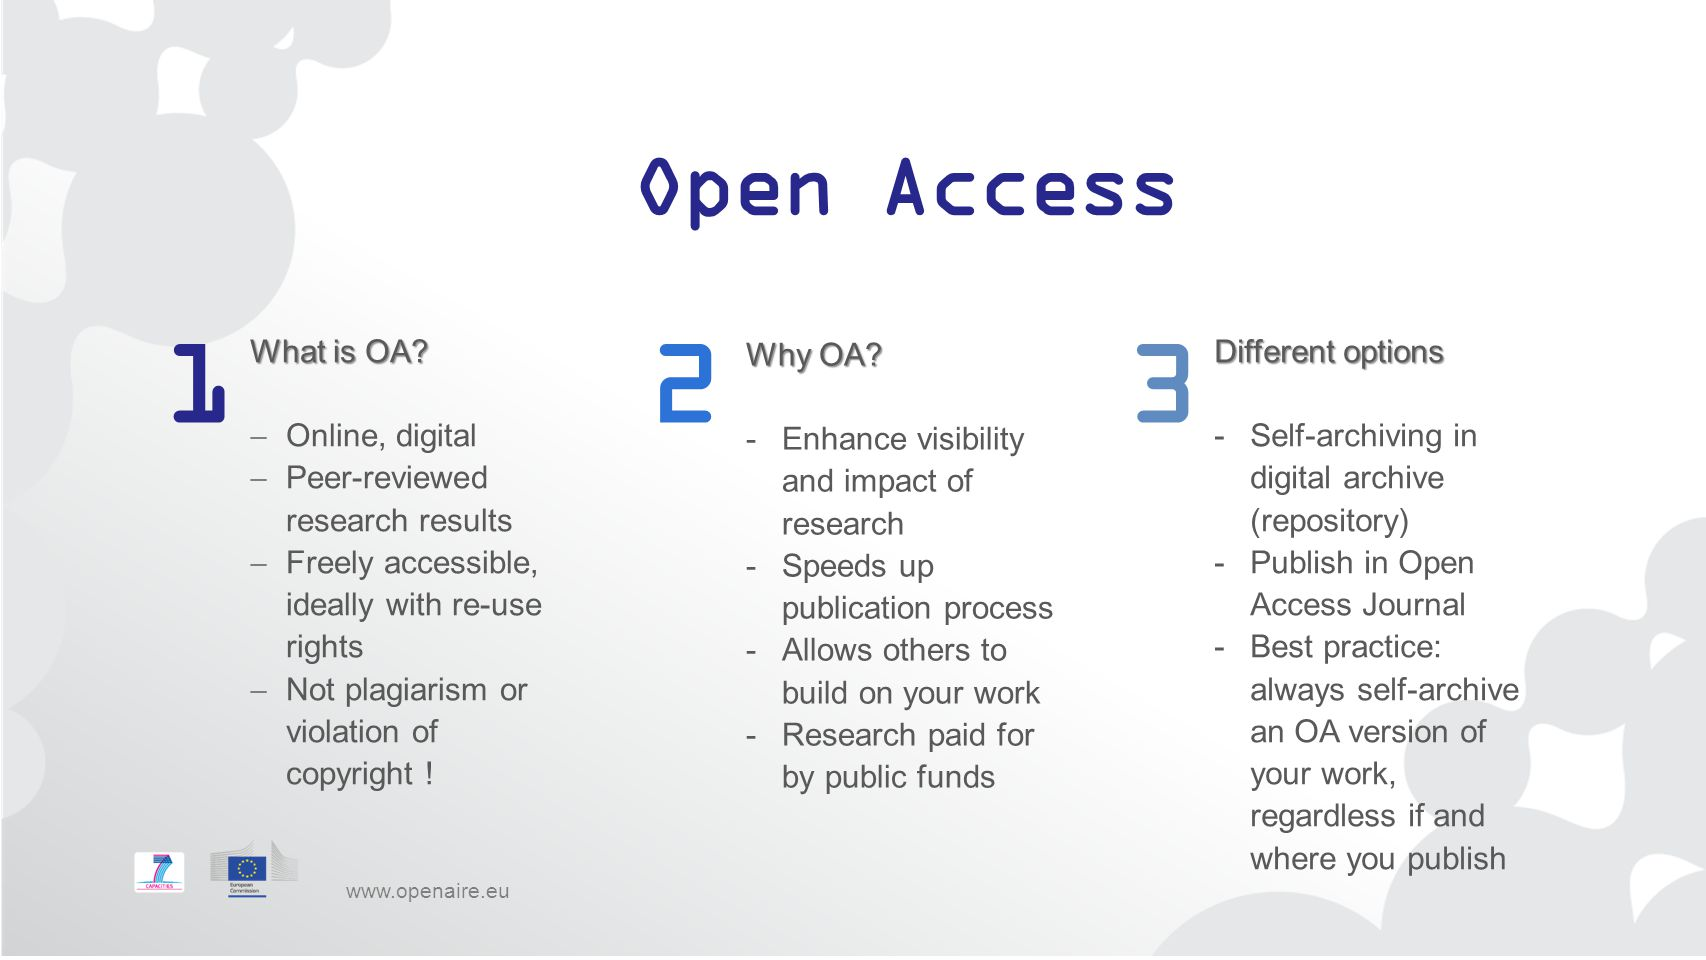 1 2 3 Open Access Different options